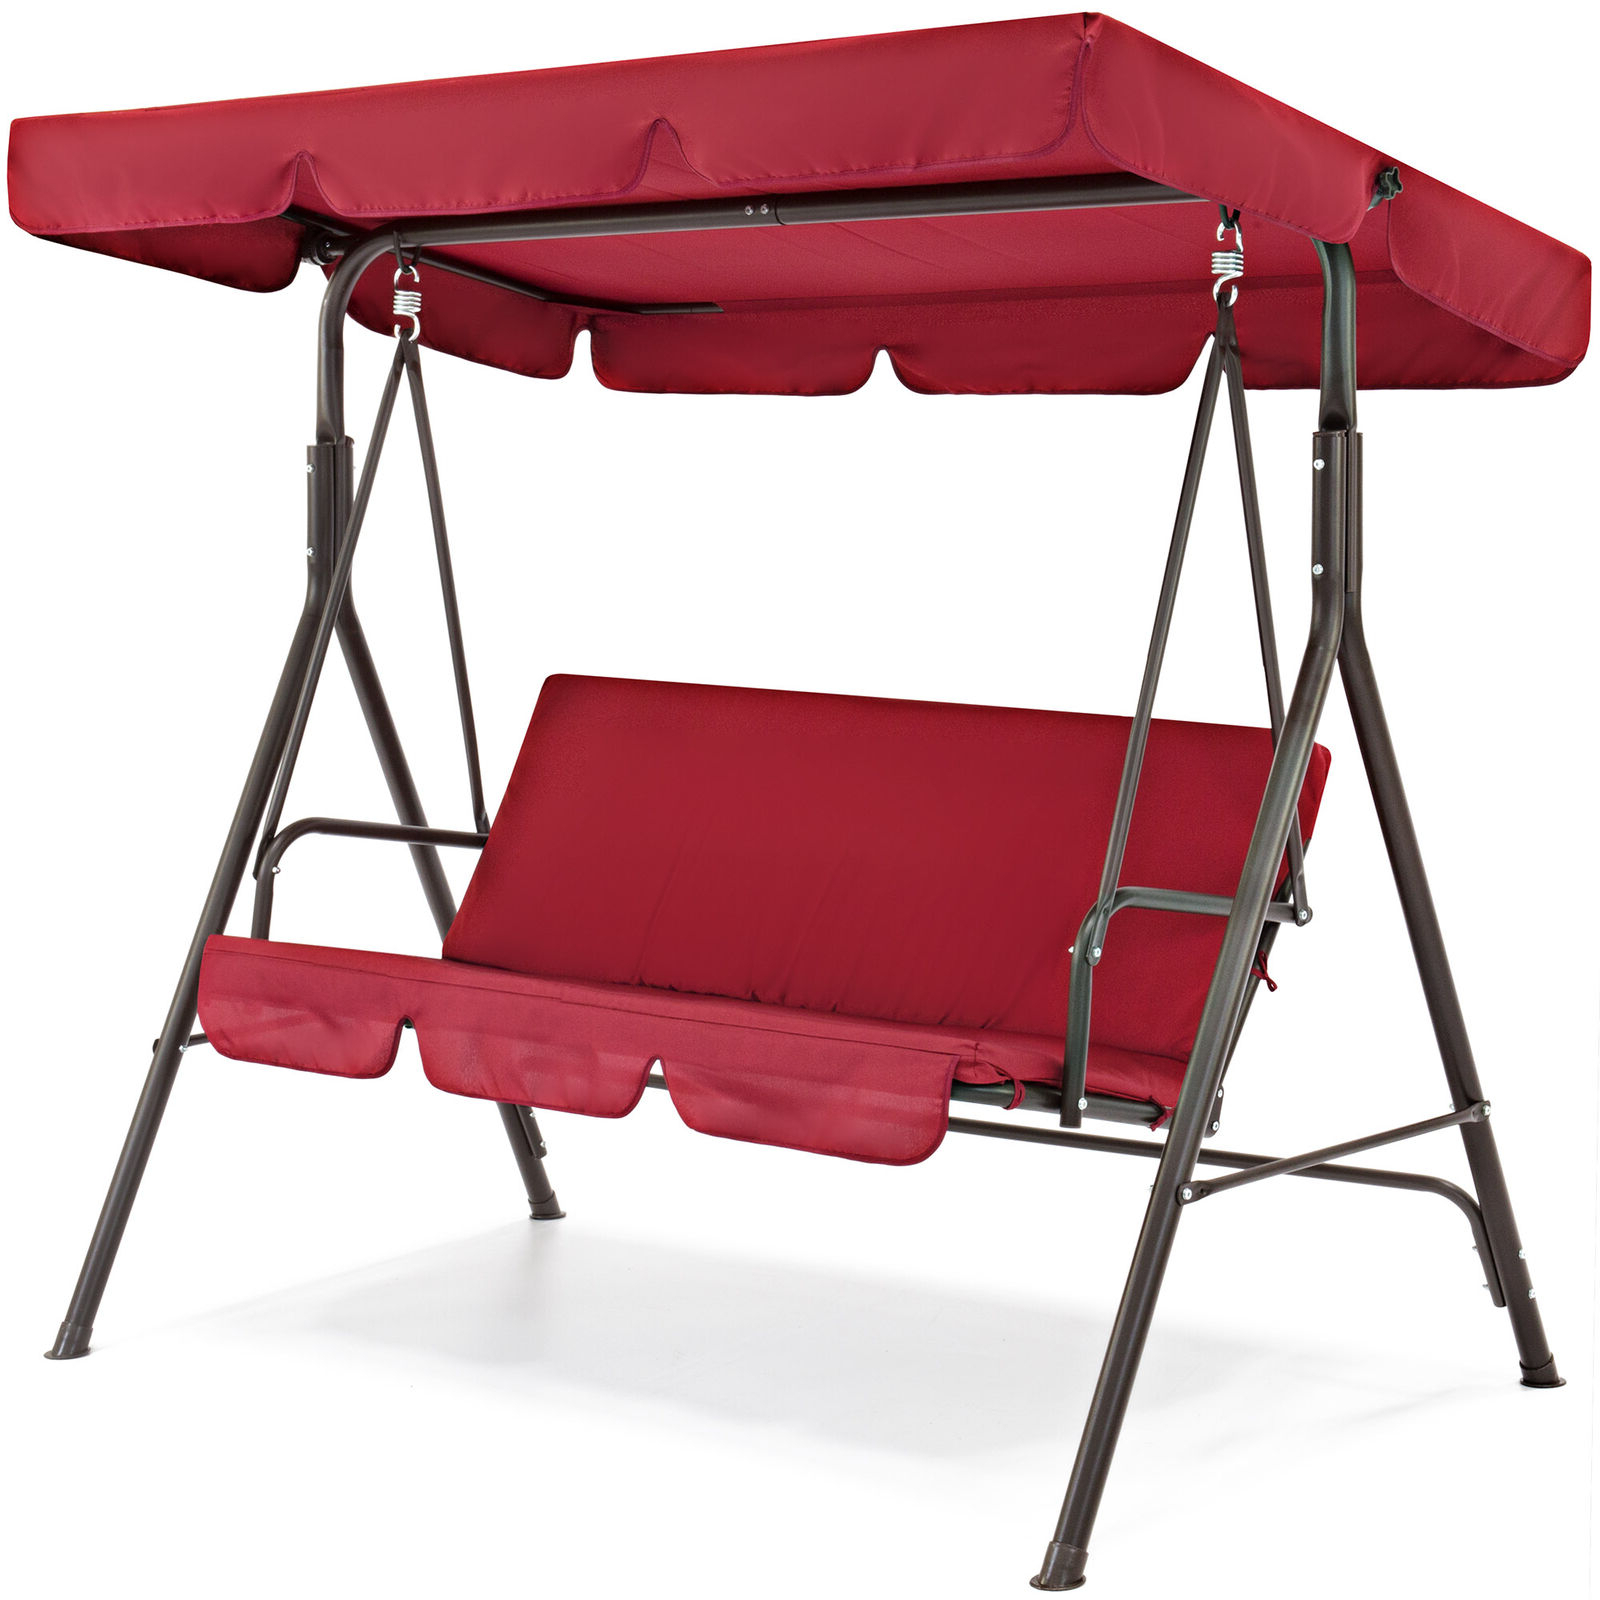 Newest 2 Person Outdoor Convertible Canopy Swing Gliders With Removable Cushions Beige In Best Choice Products Outdoor 2 Person Patio Canopy Swing – Burgundy (View 10 of 30)